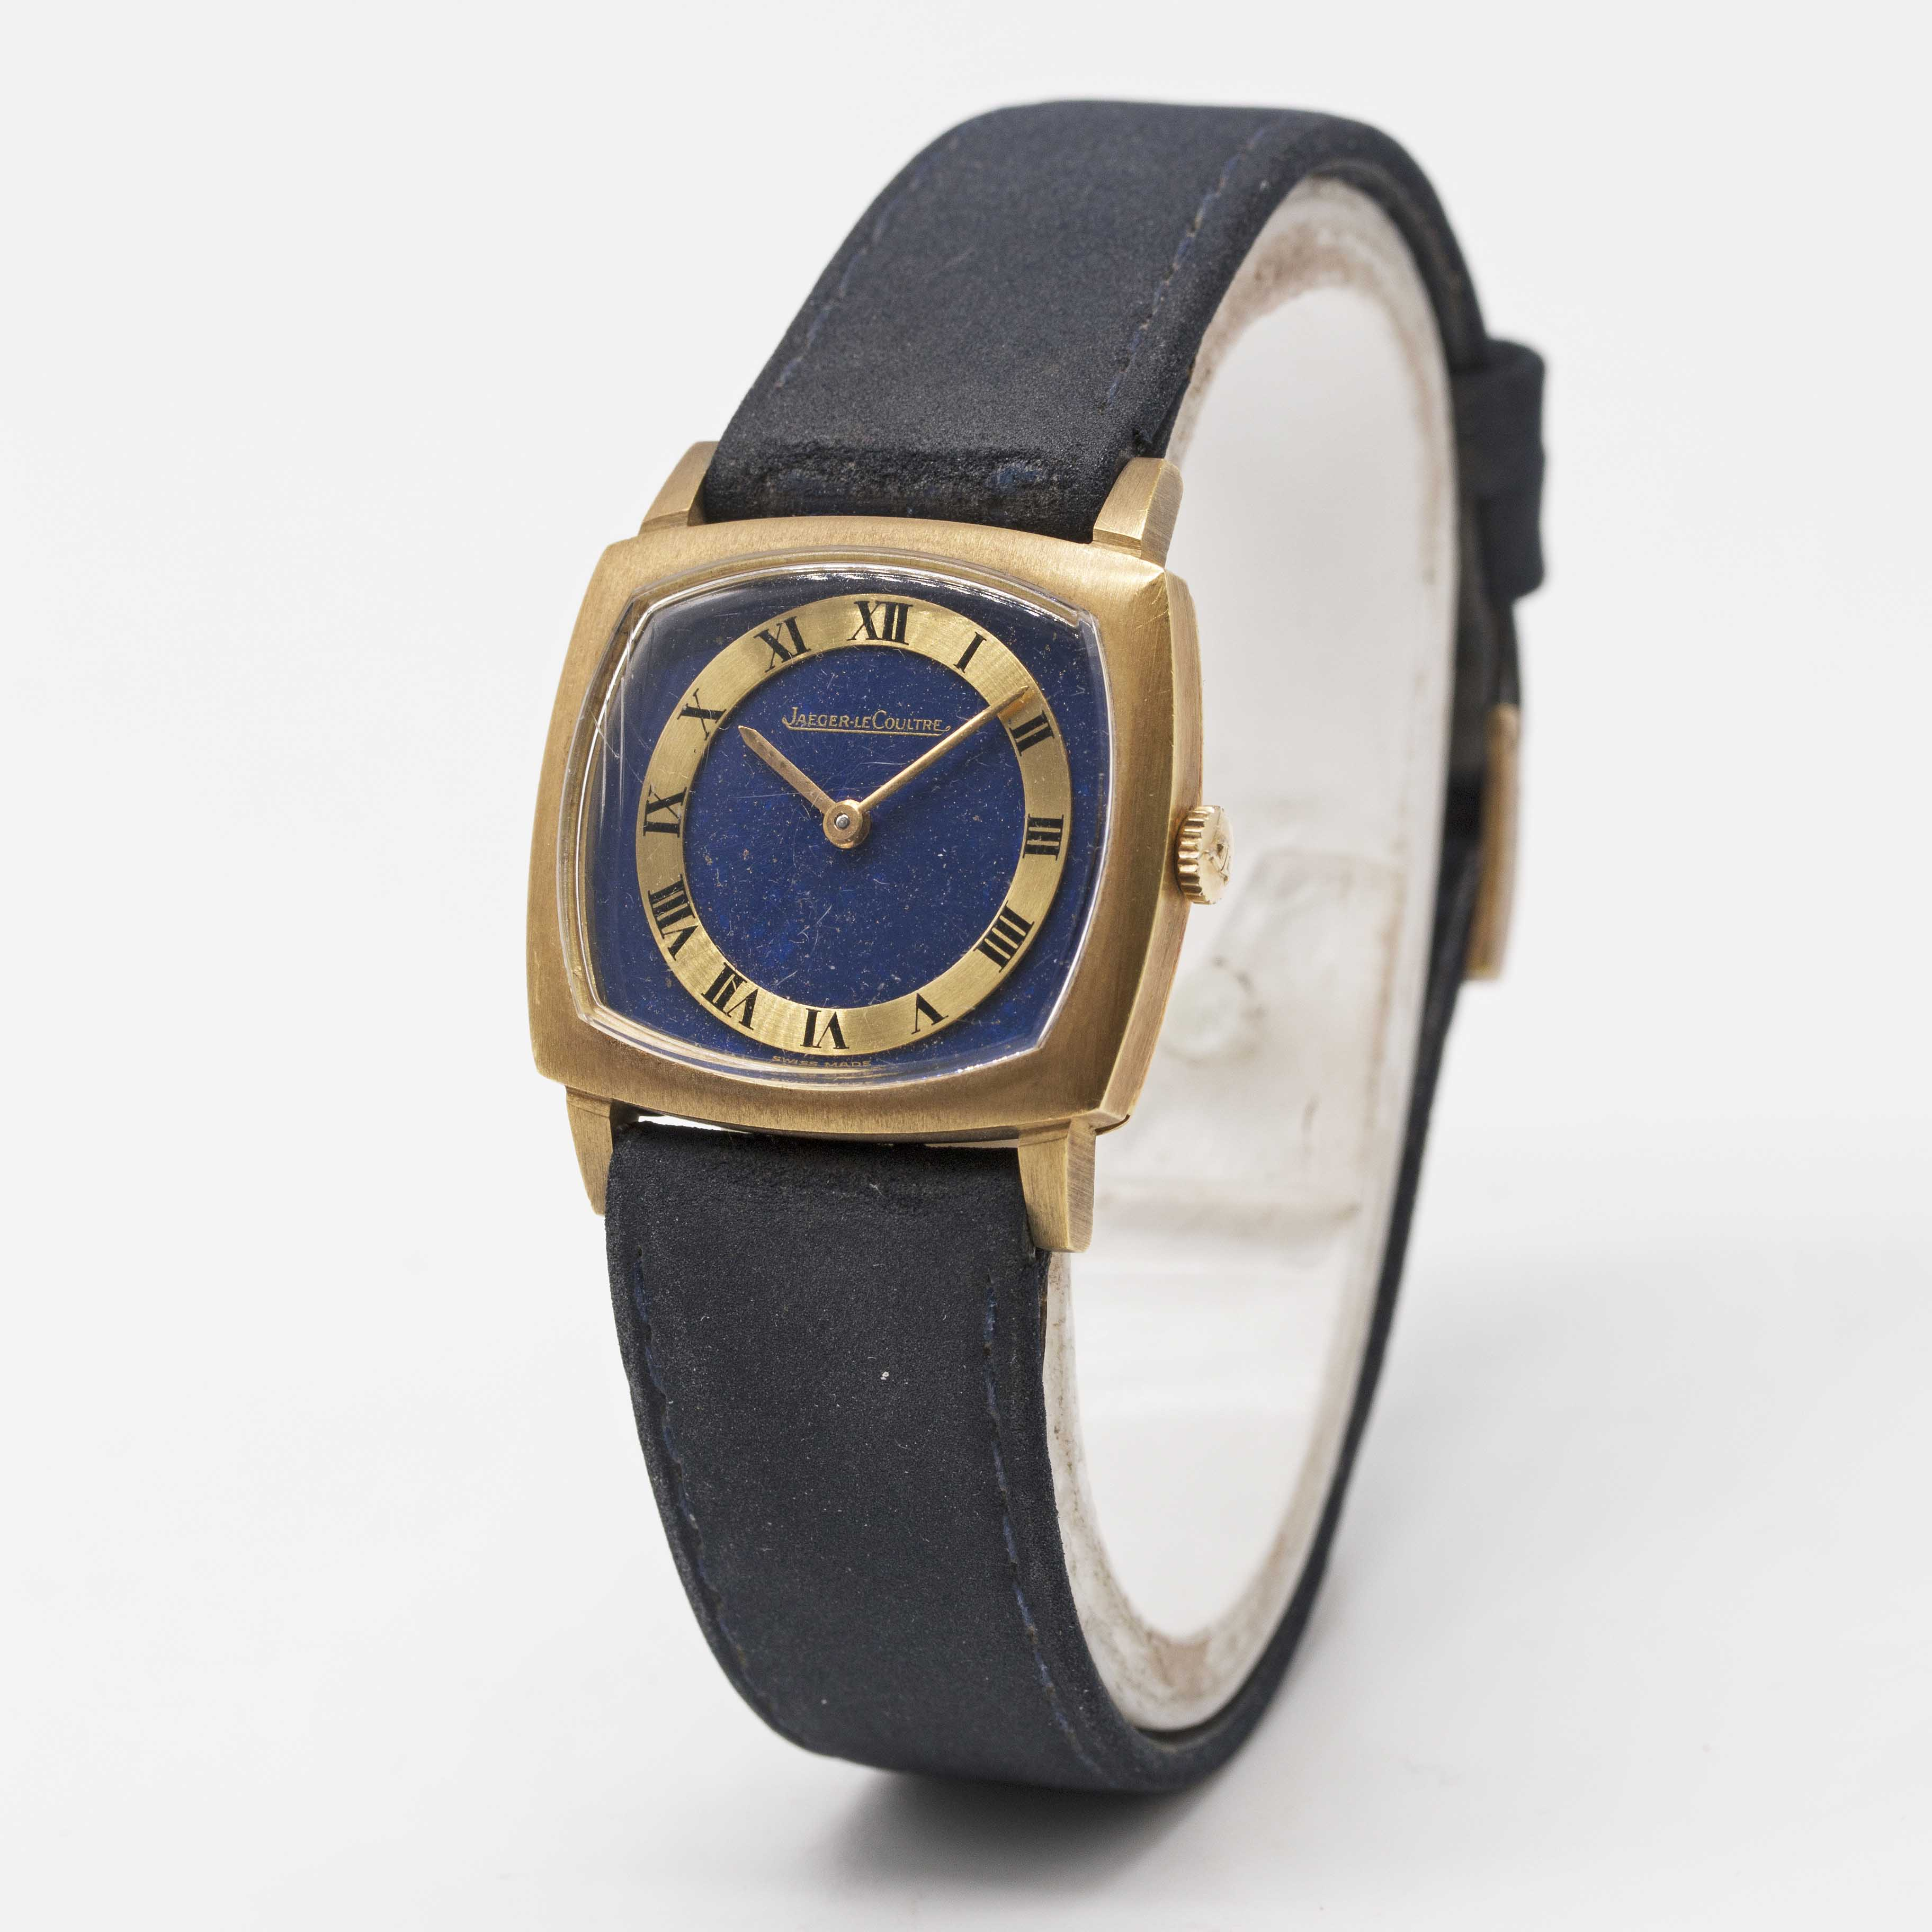 Lot 9 - AN 18K SOLID YELLOW GOLD JAEGER LECOULTRE WRIST WATCH CIRCA 1970s, REF. 9032 WITH LAPIS LAZULI